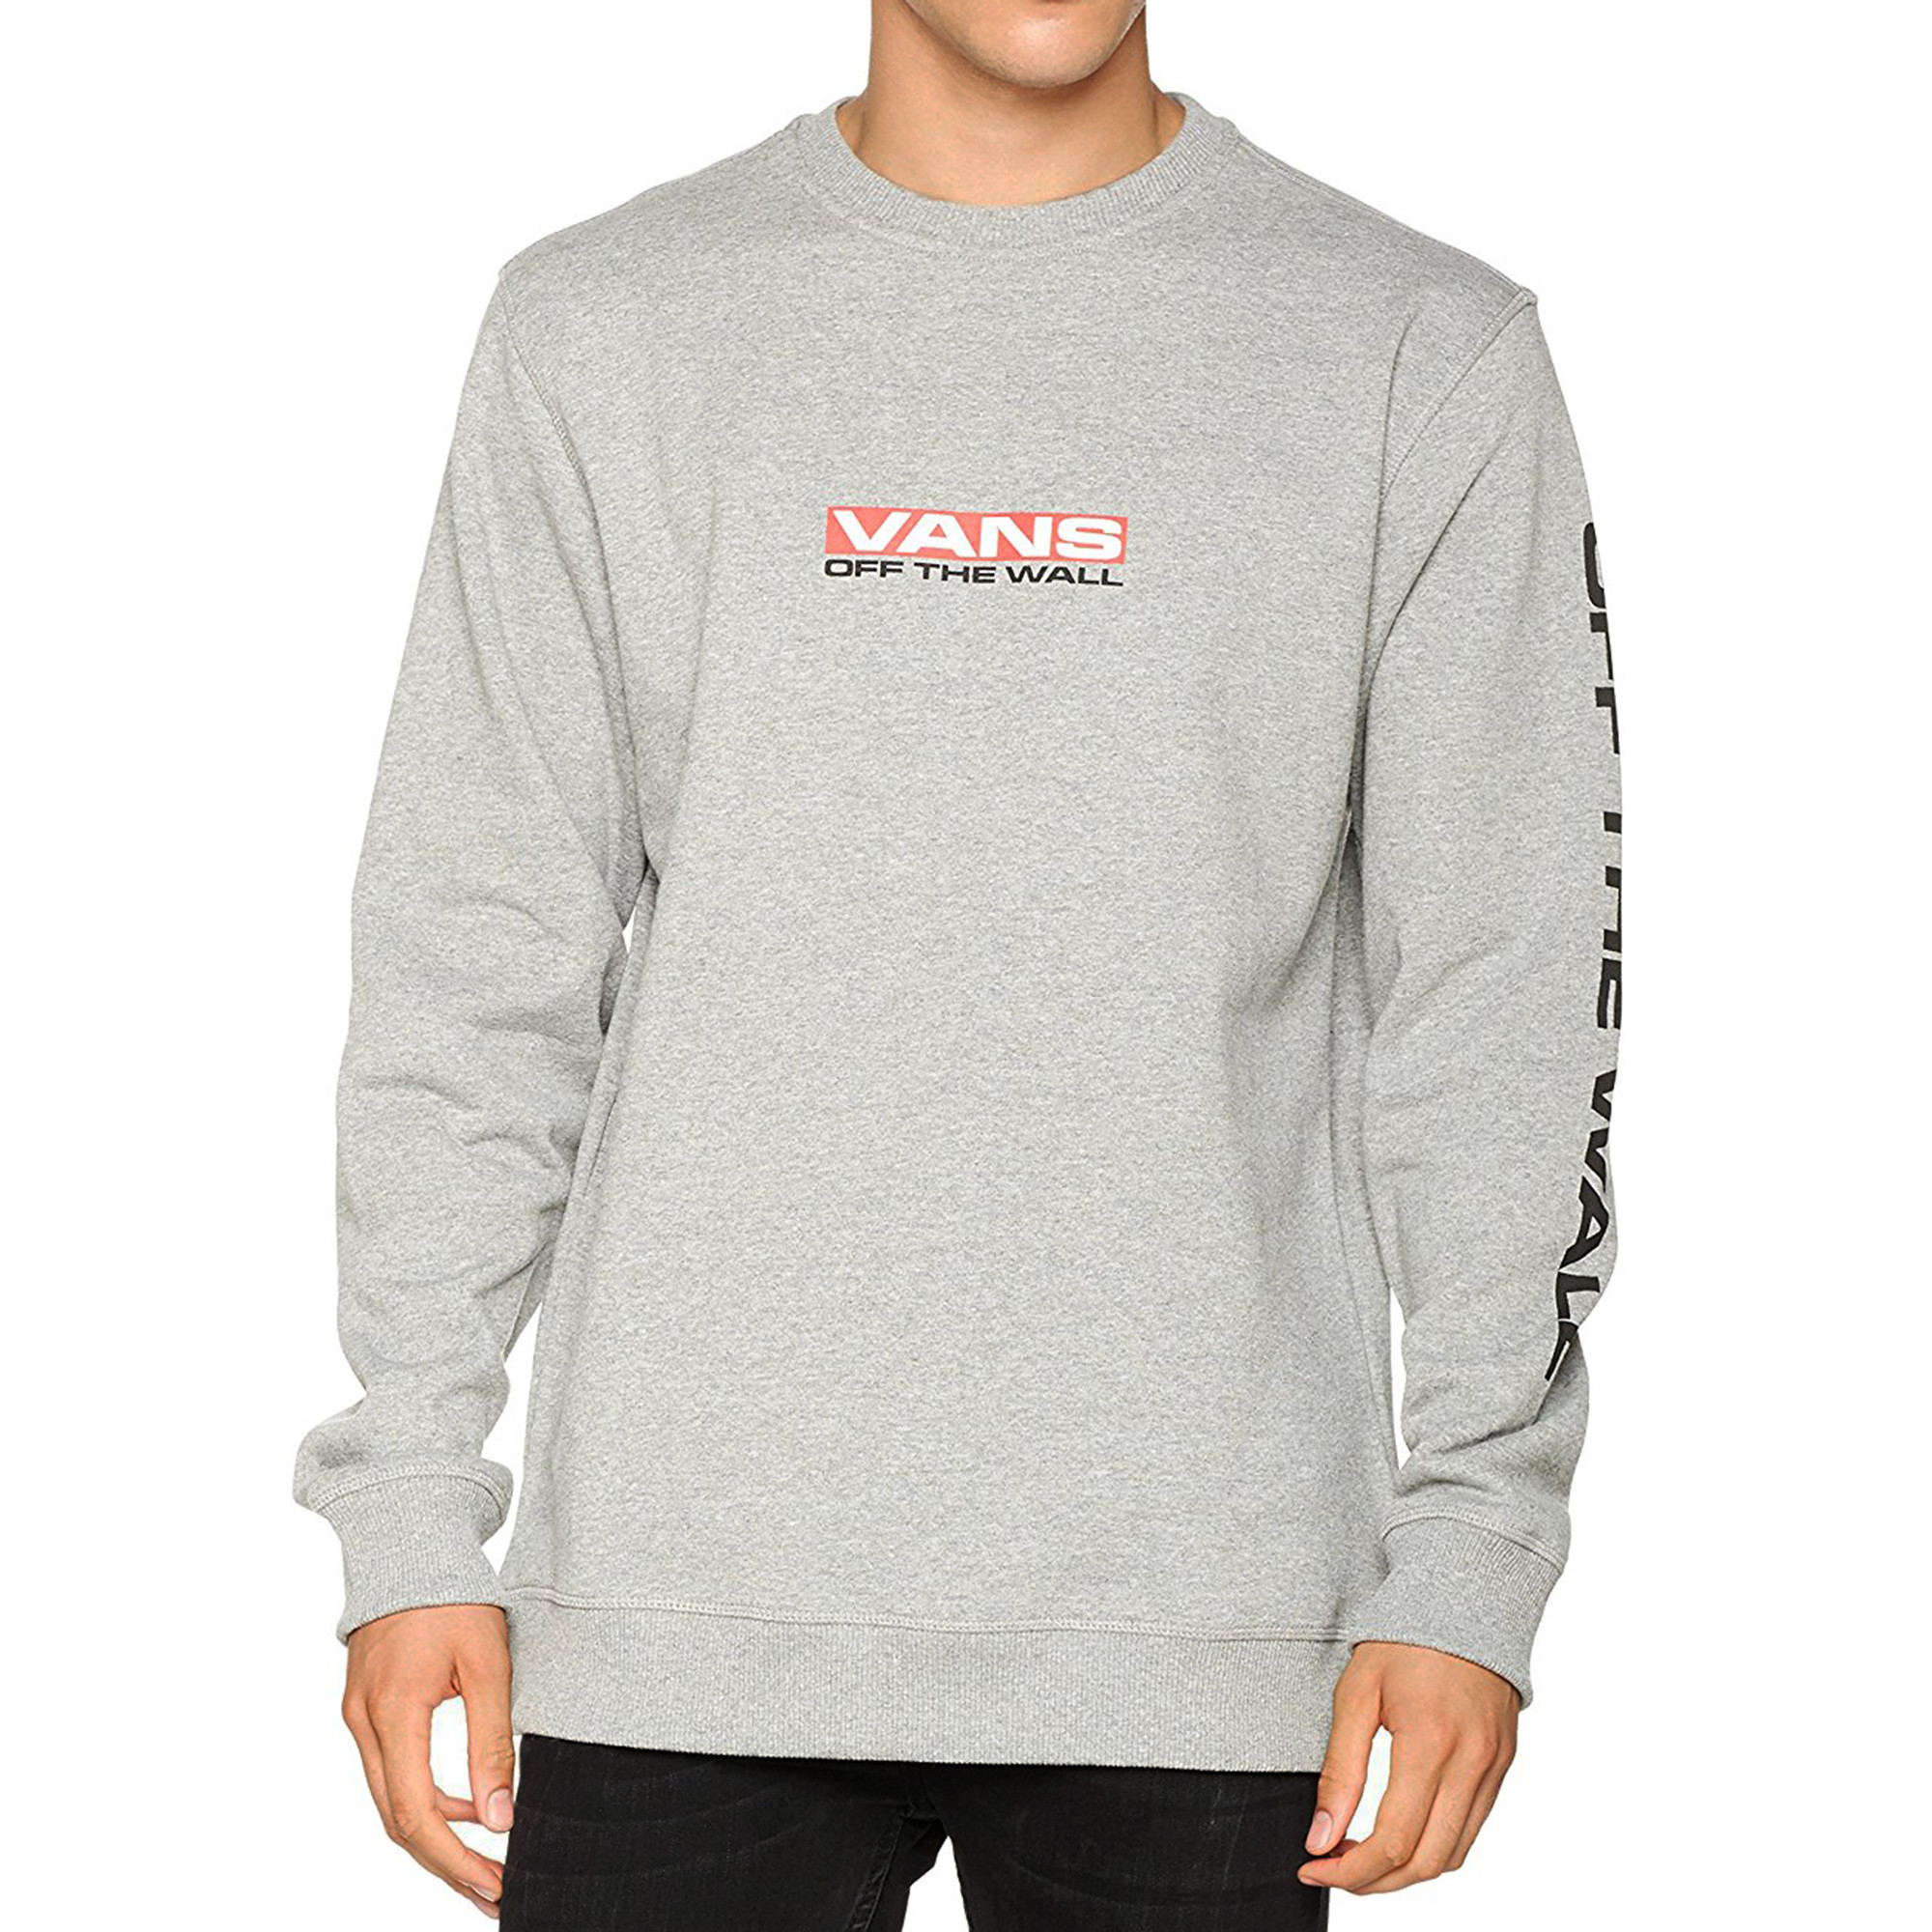 3656aee980 VANS Men s Side Waze Logo Pullover Crew Neck Sweatshirt Cement Heather